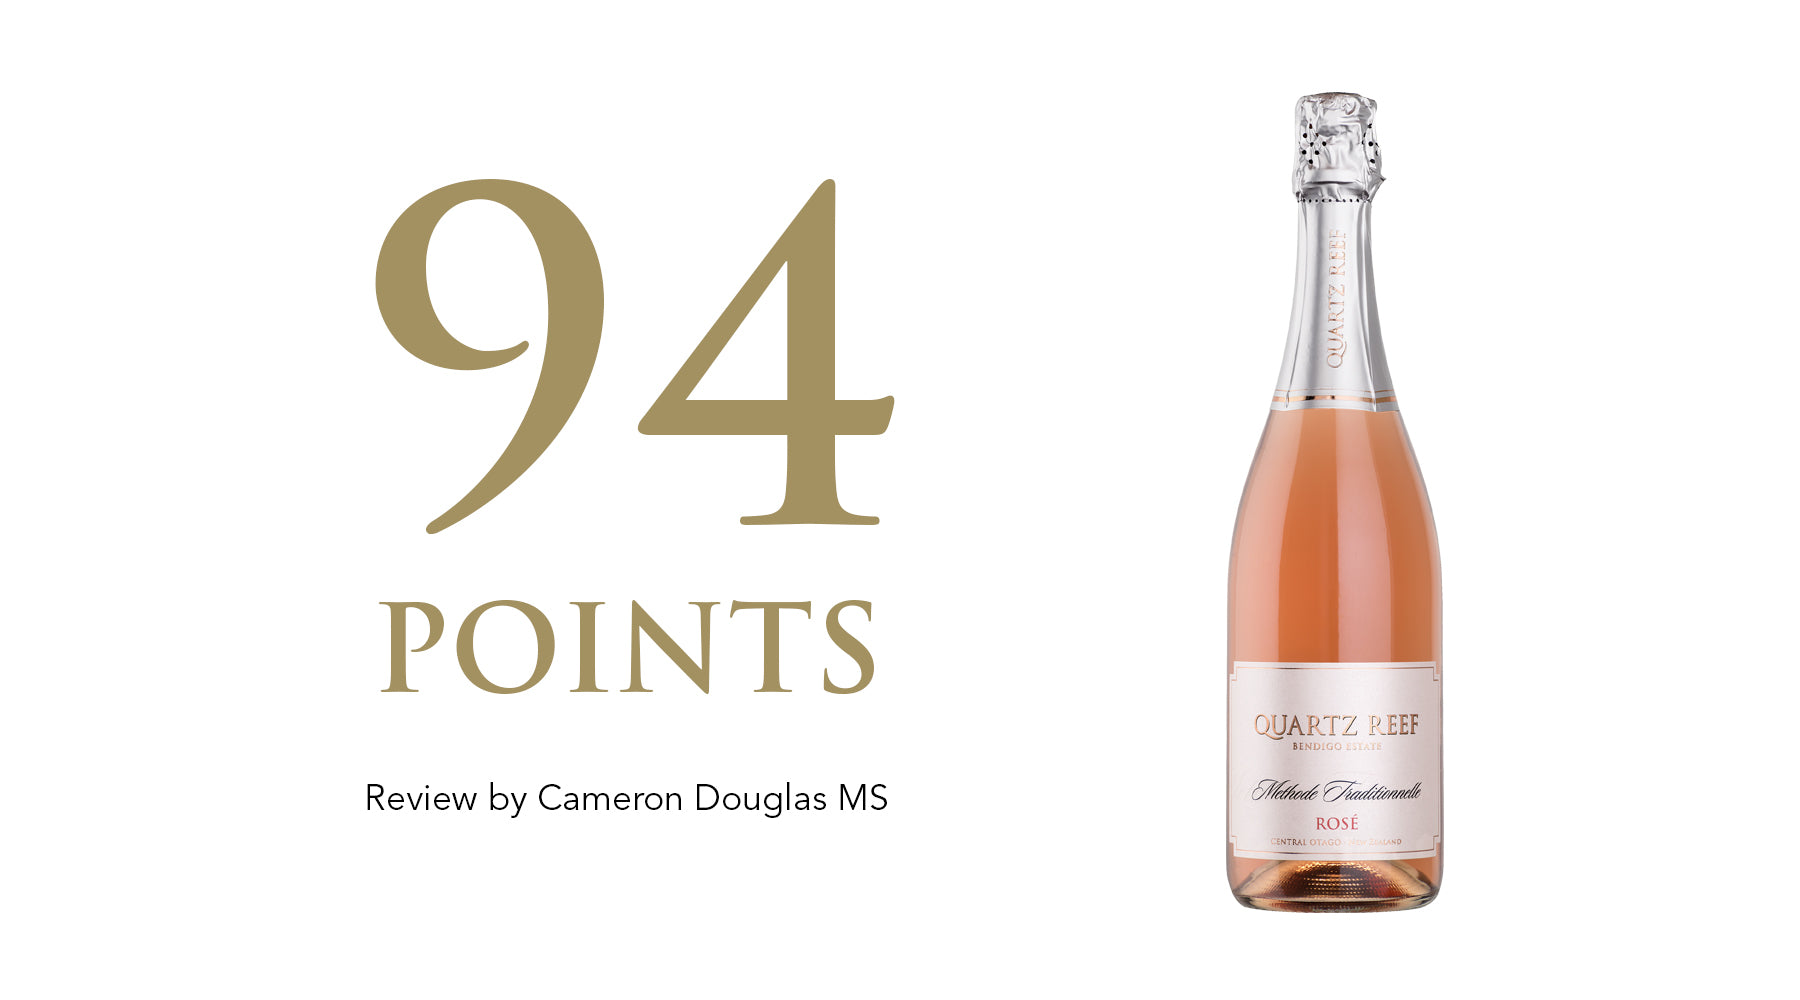 Methode Traditionnelle Rosé NV - Awarded 94 Points